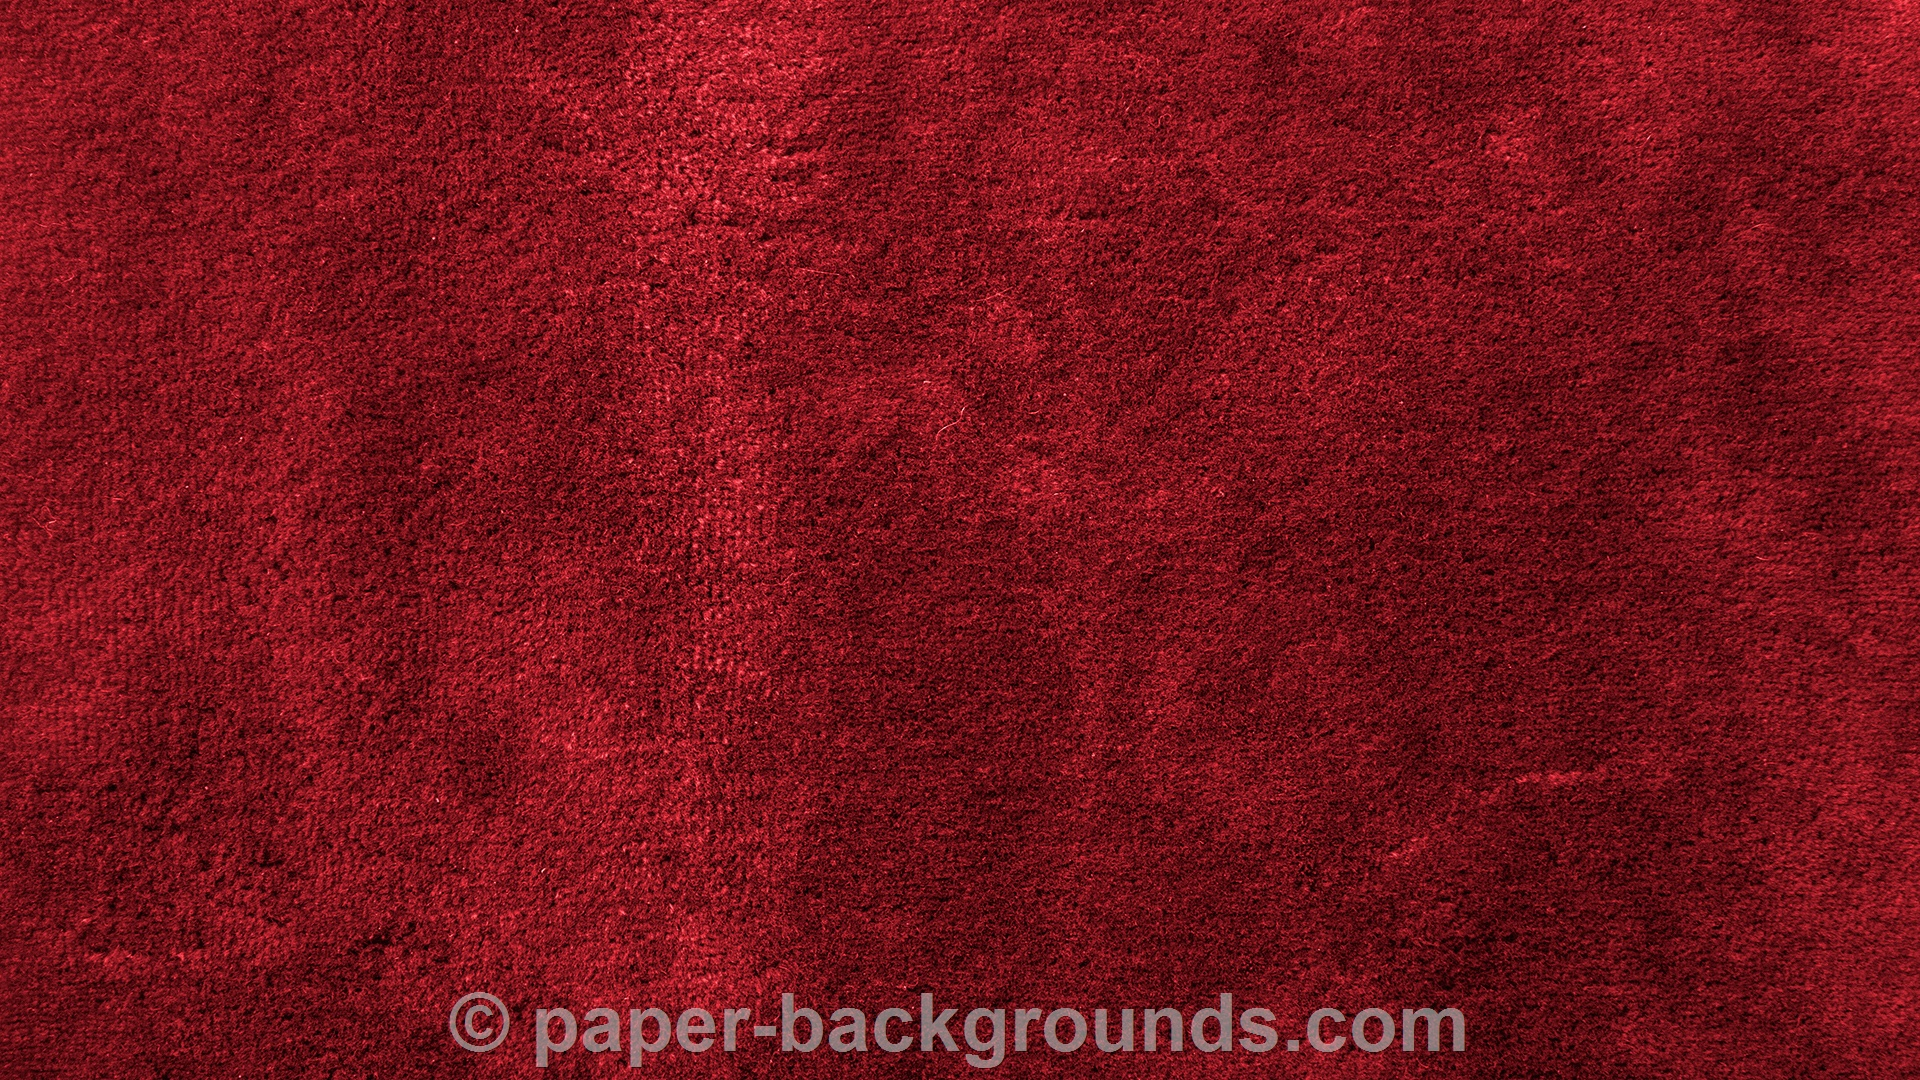 Paper Backgrounds burgundy Royalty Free HD Paper  : red velvet texture background hd from paper-backgrounds.com size 1920 x 1080 jpeg 1464kB